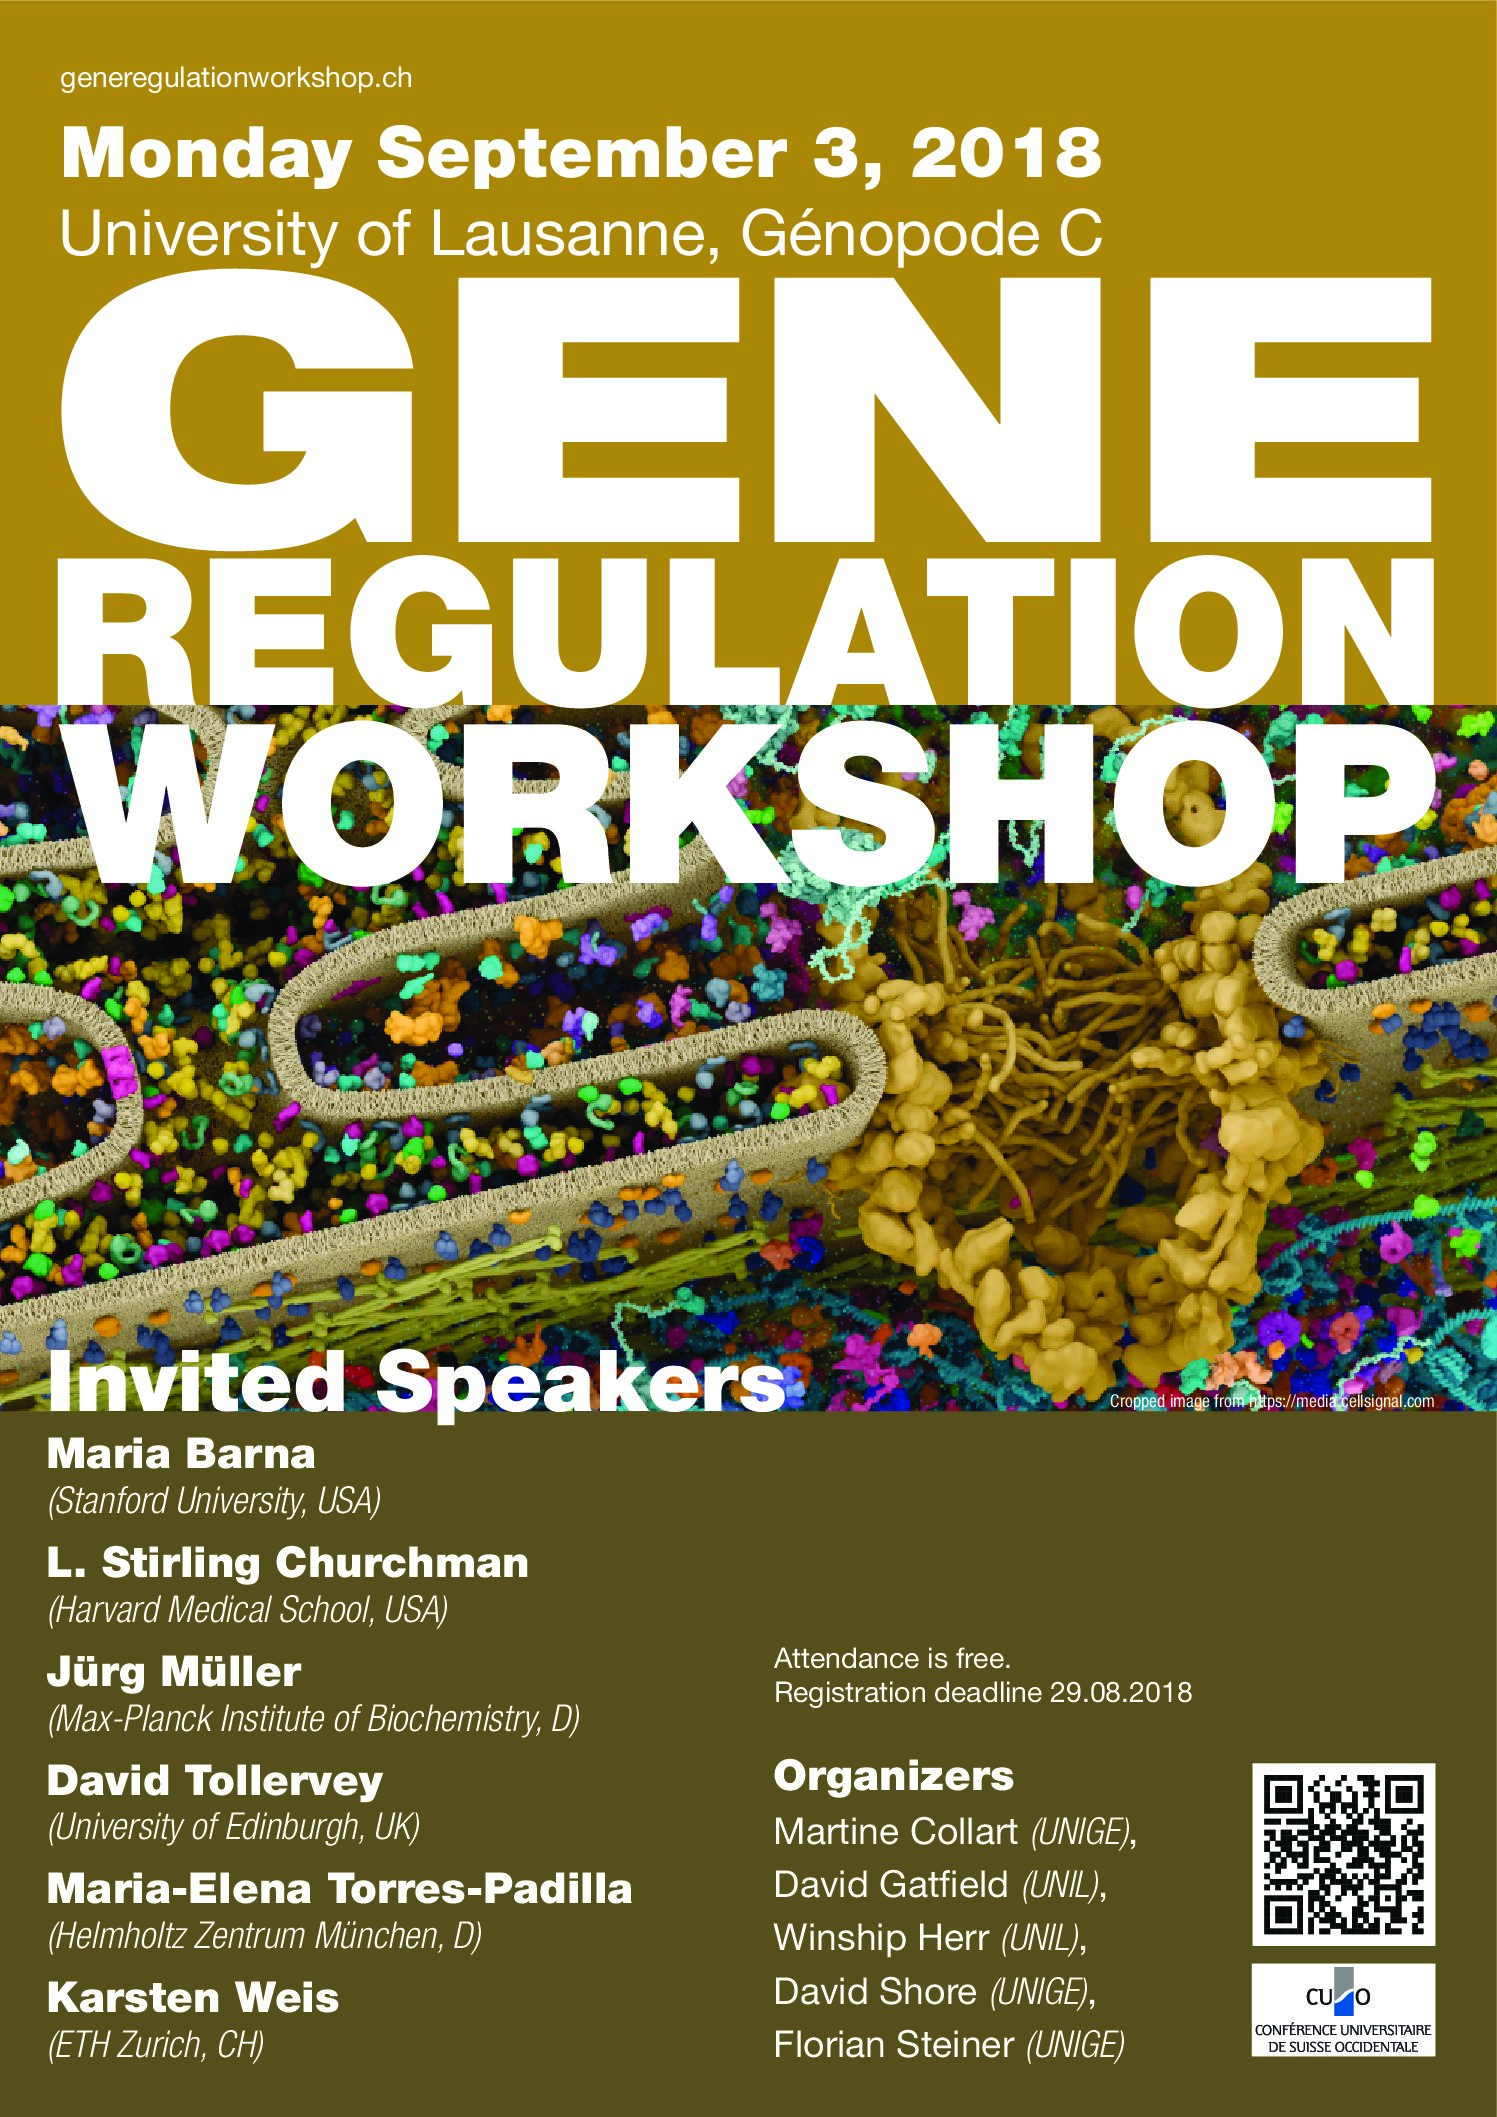 Dear all, The 2018 SKMB Gene Regulation Workshop will take place on Monday September 3. As in previous years, we have a great lineup of speakers and attendance is free. […]